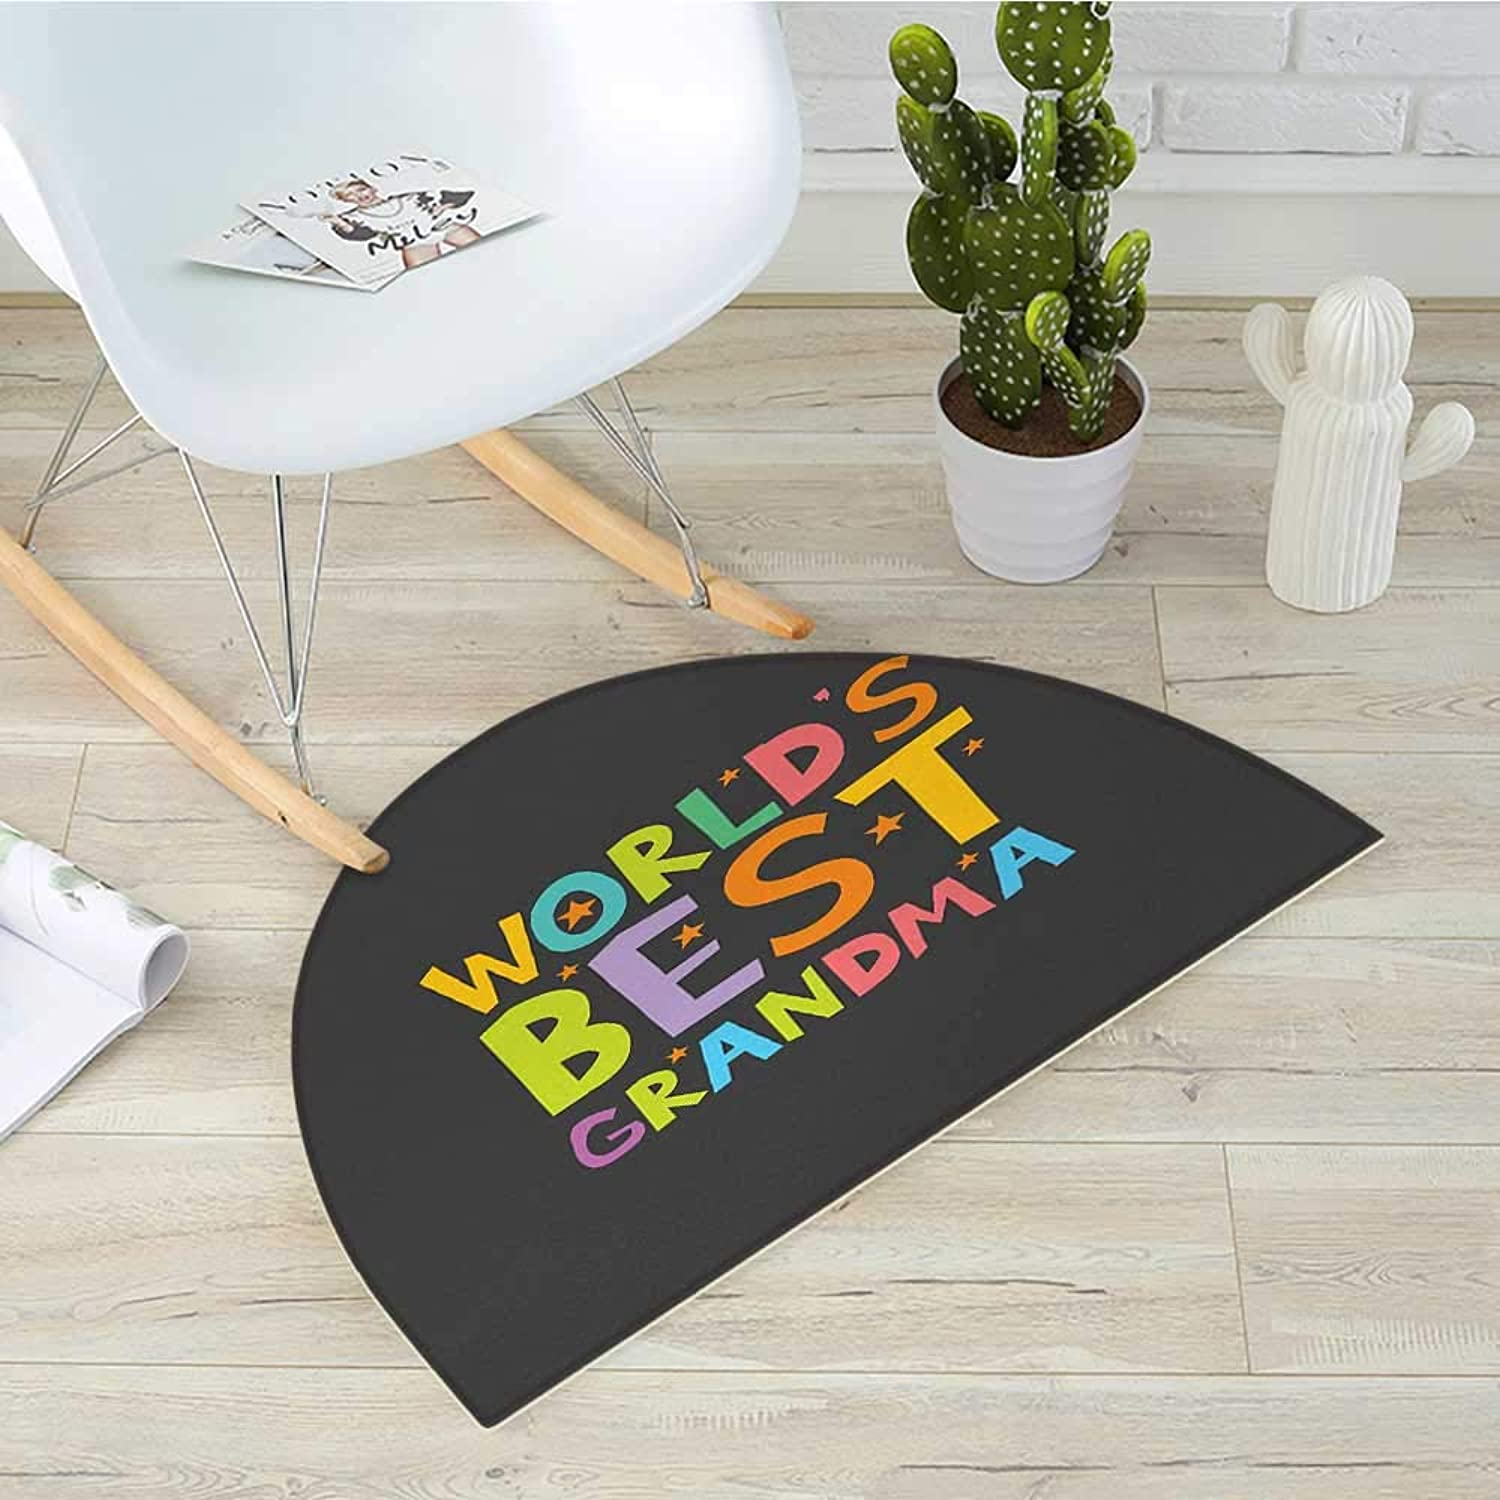 Grandma Half Round Door mats Best Grandmother Quote with colorful Letters Doodle Stars on Greyscale Background Bathroom Mat H 39.3  xD 59  Multicolor